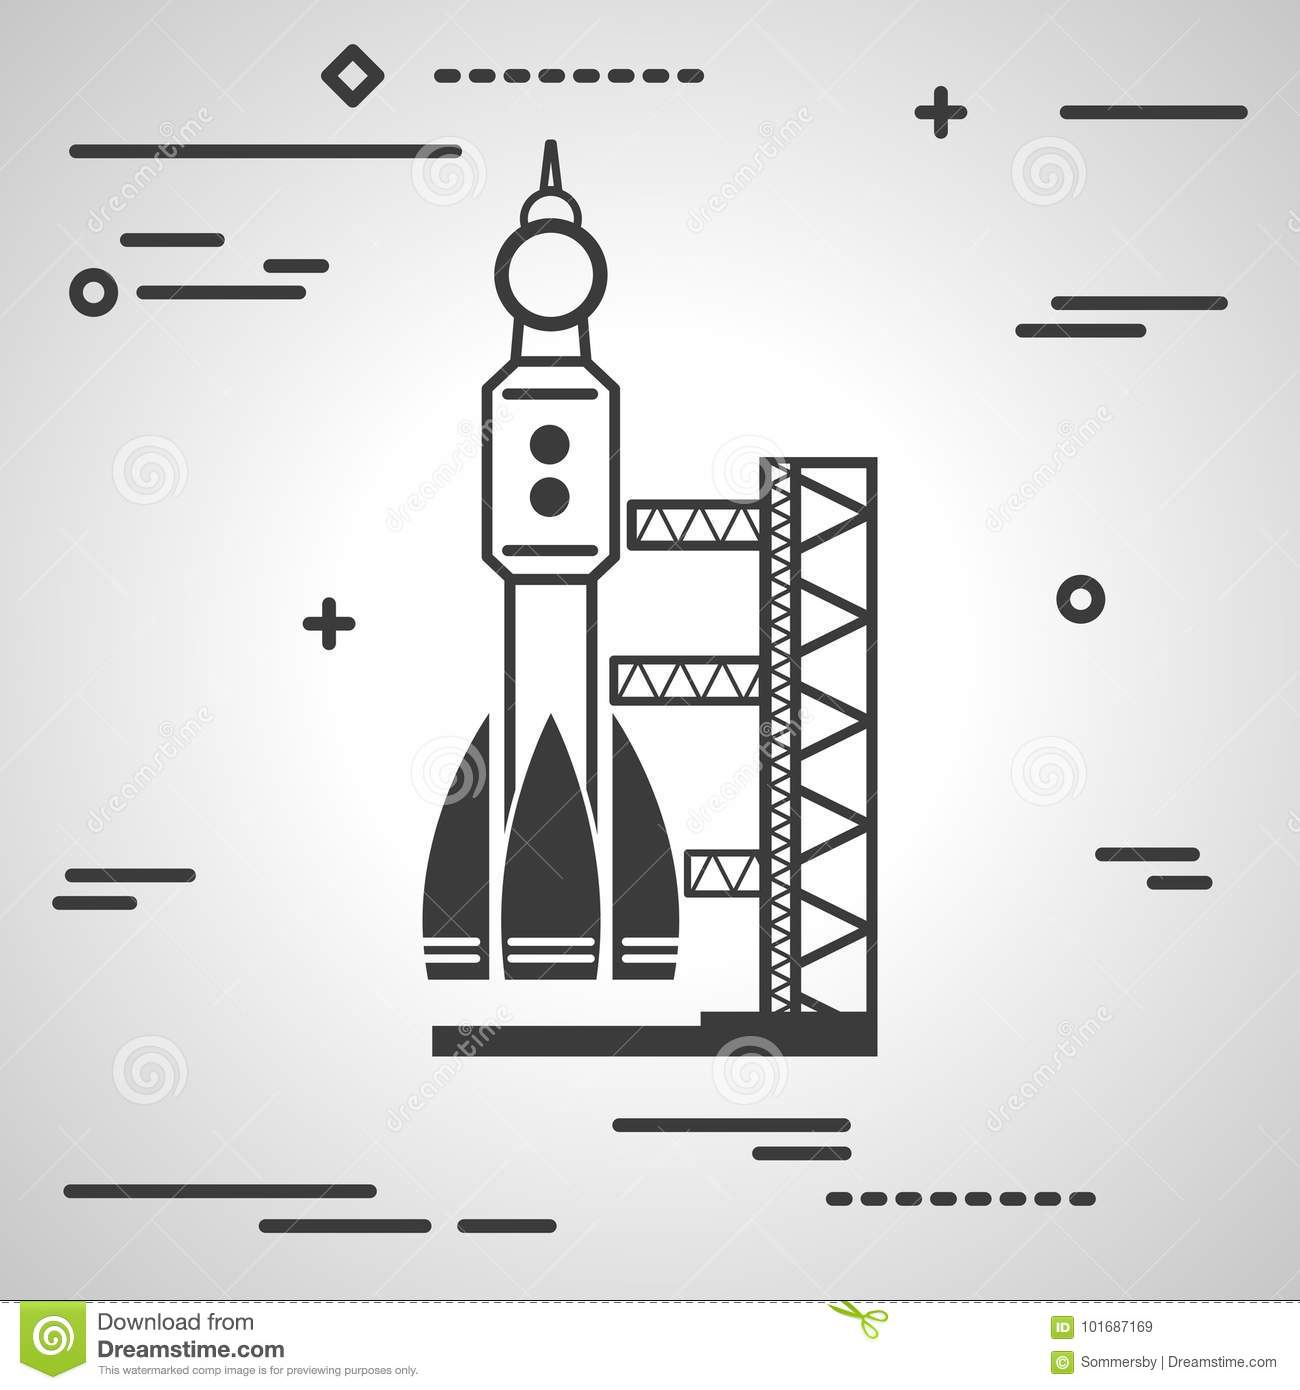 Flat Line art design graphic image concept of black launch site